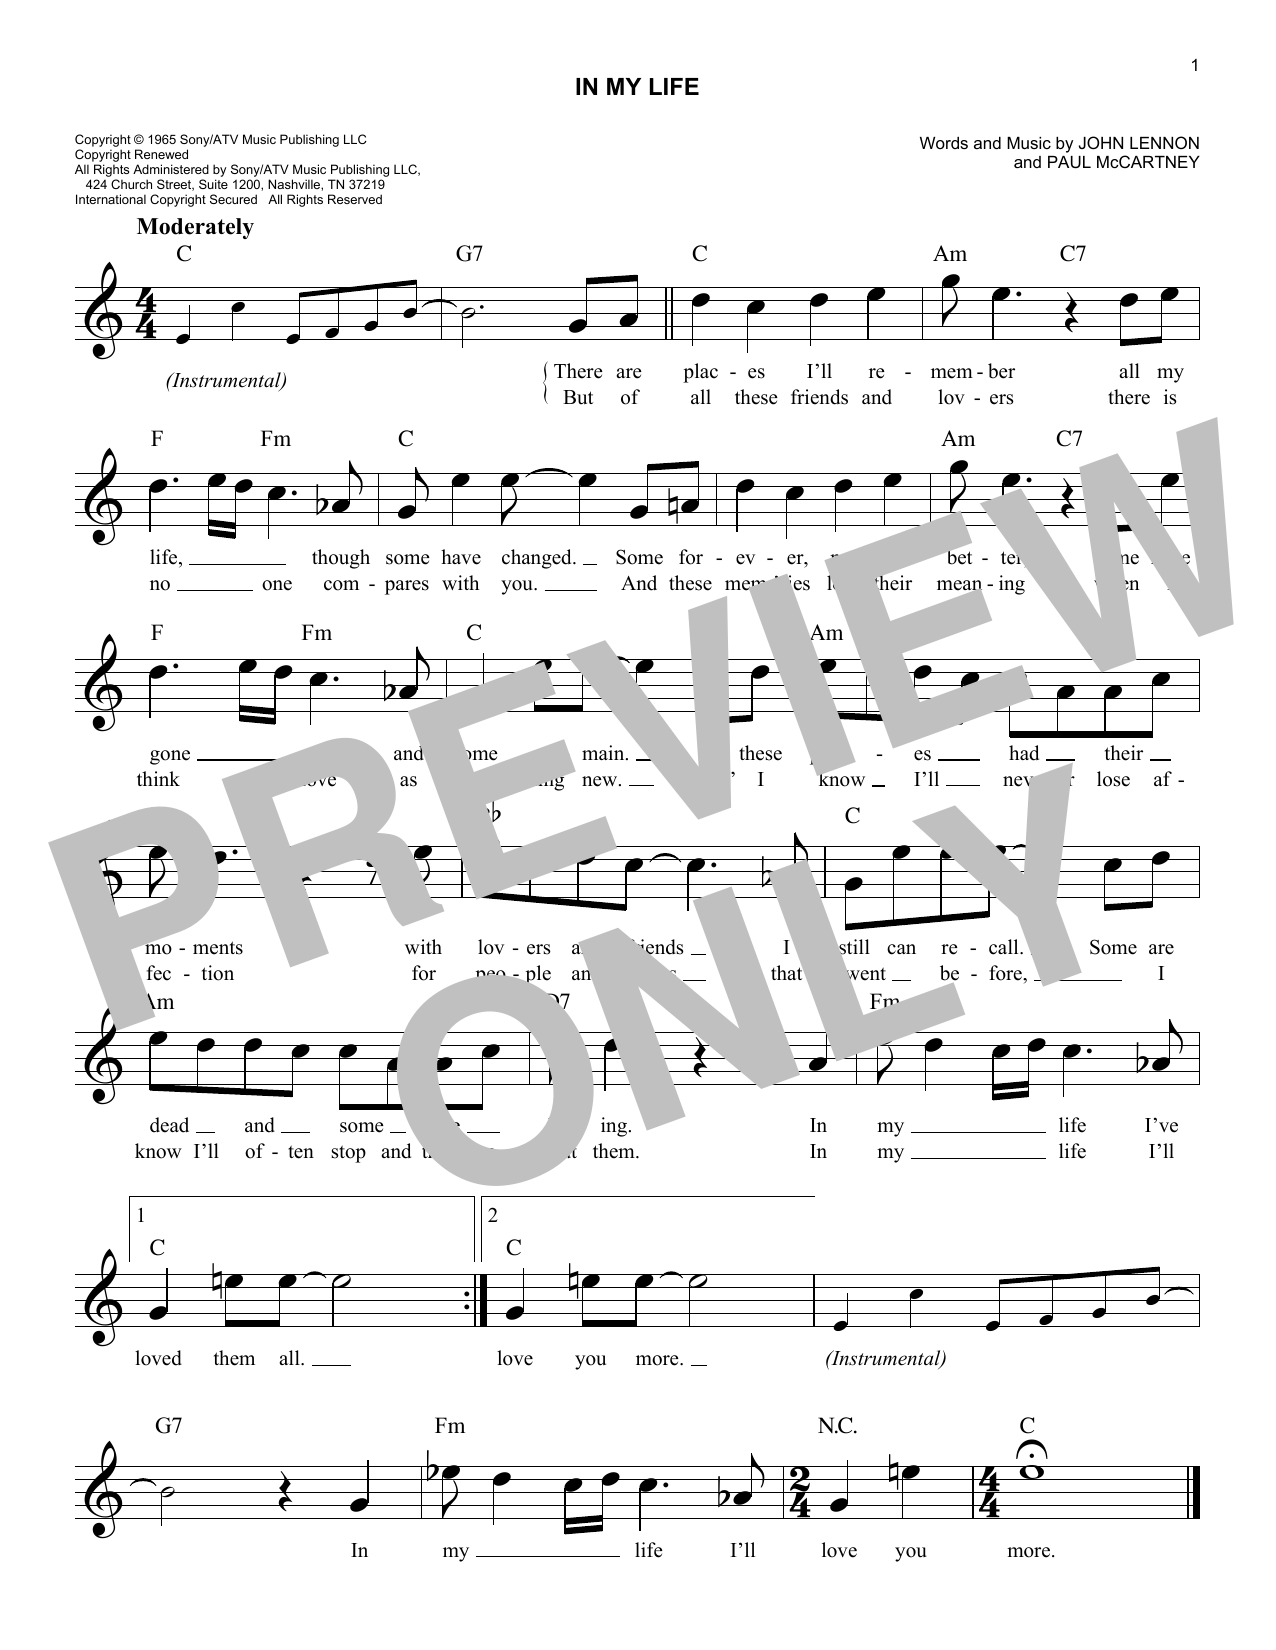 The Beatles 'In My Life' Sheet Music Notes, Chords | Download Printable  Melody Line, Lyrics & Chords - SKU: 174994